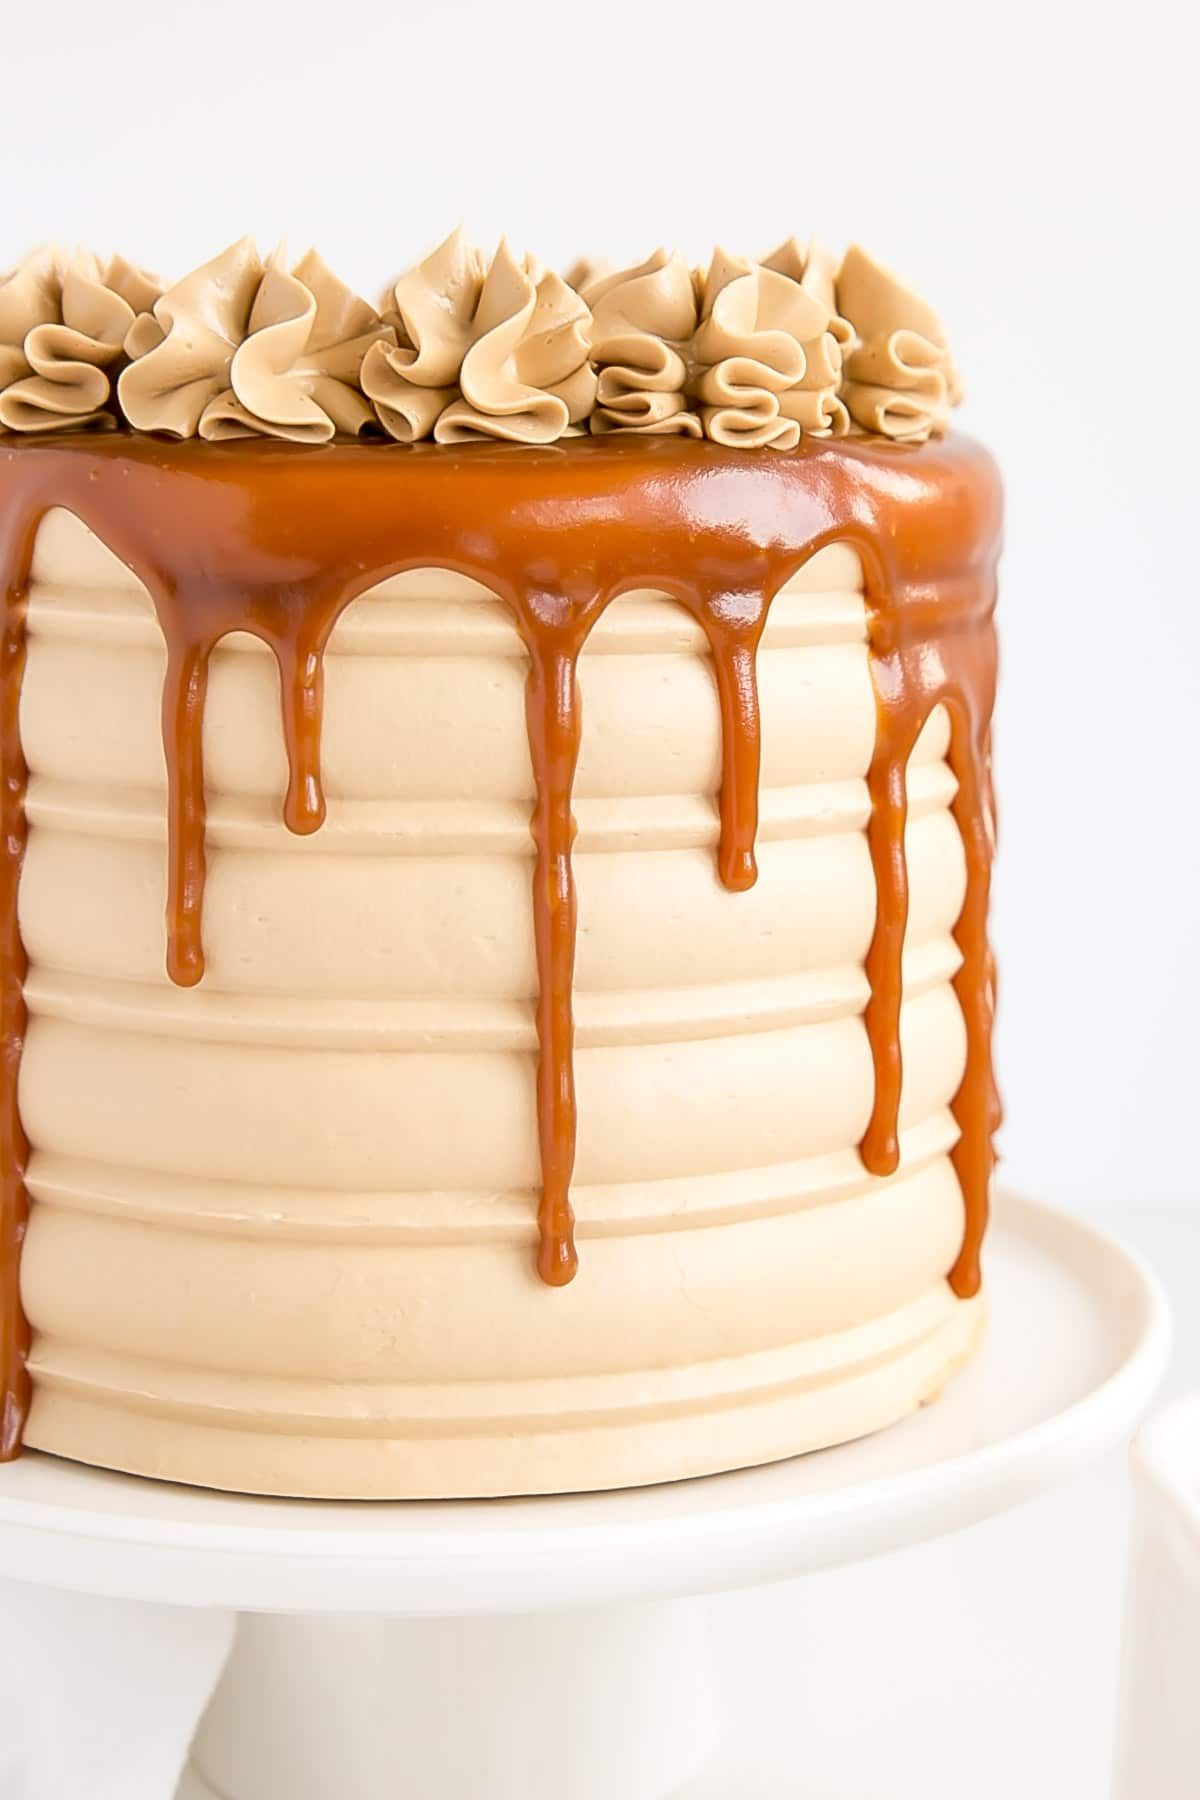 Close up of a caramel cake showing textured sides and a